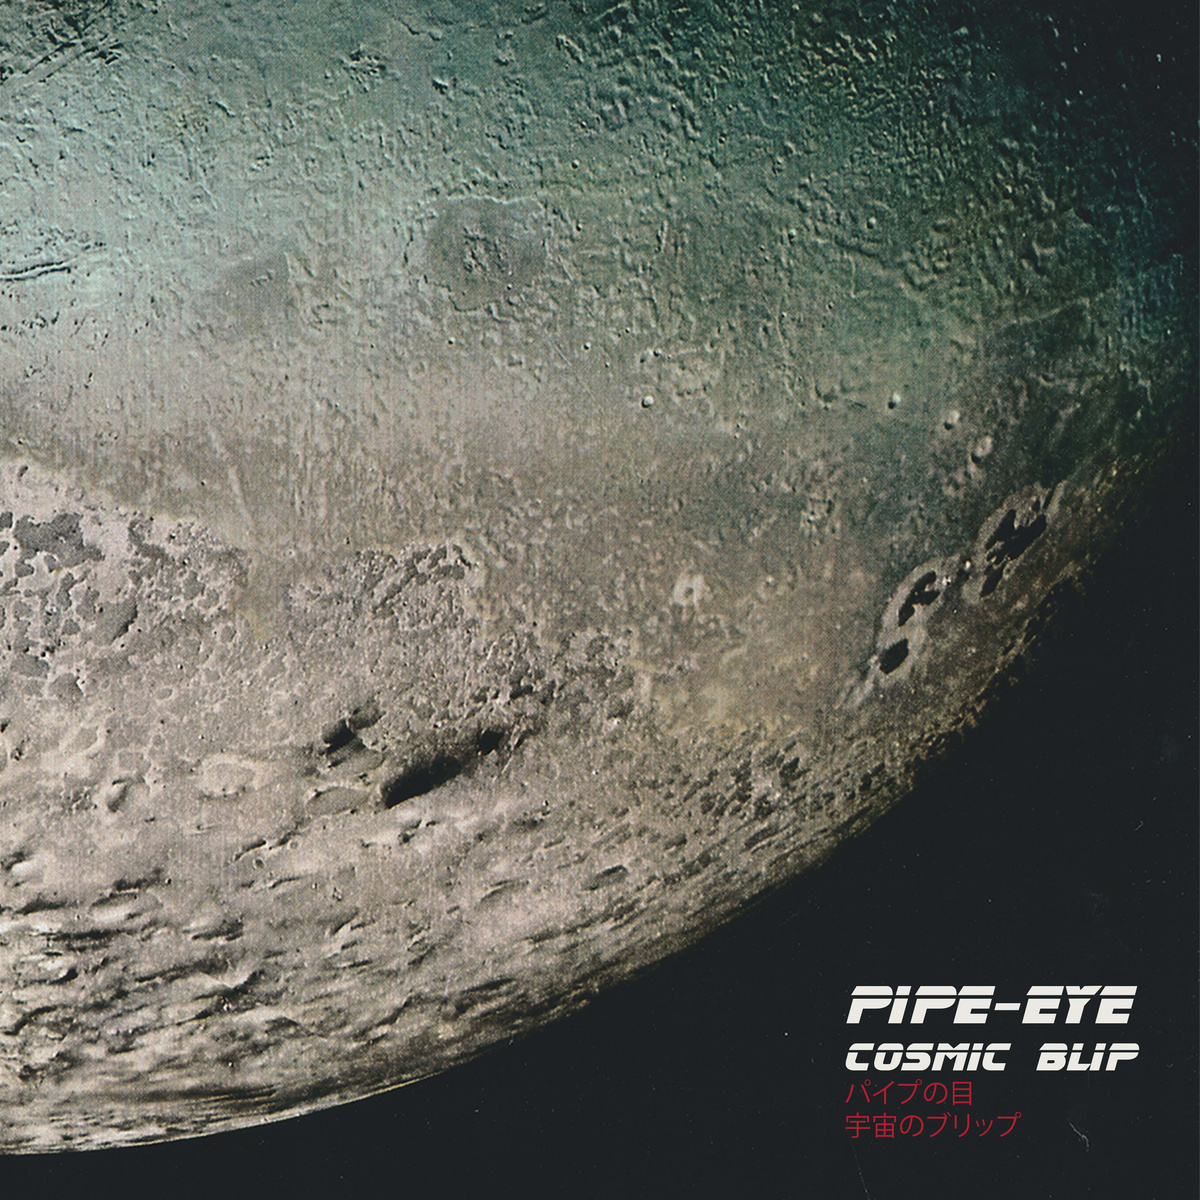 Pipe-eye – Cosmic Blip